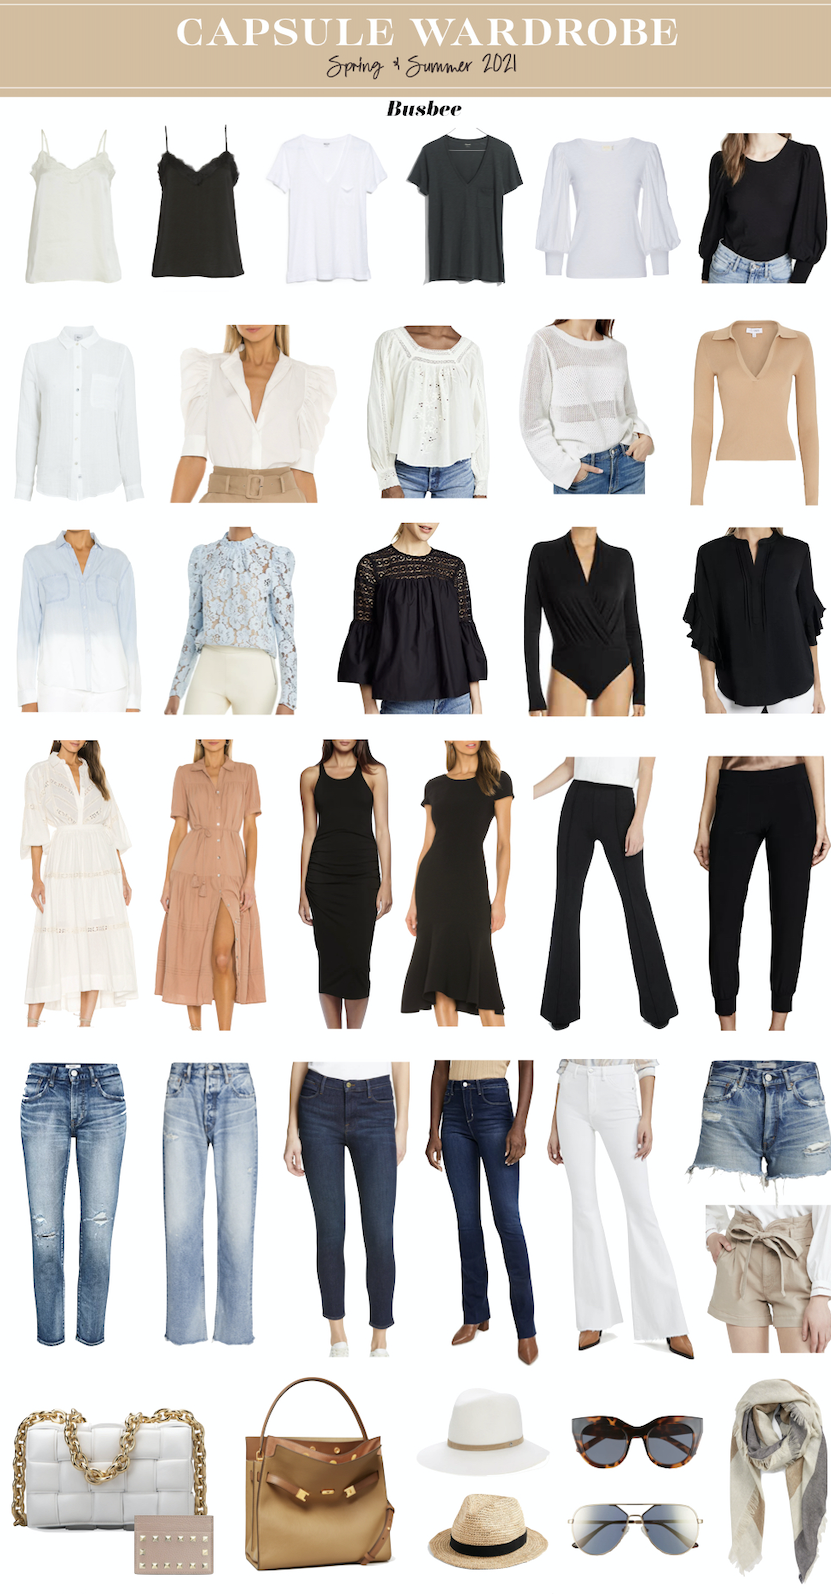 Spring and summer capsule wardrobe by Erin Busbee of Busbee STyle for women over 40 2021